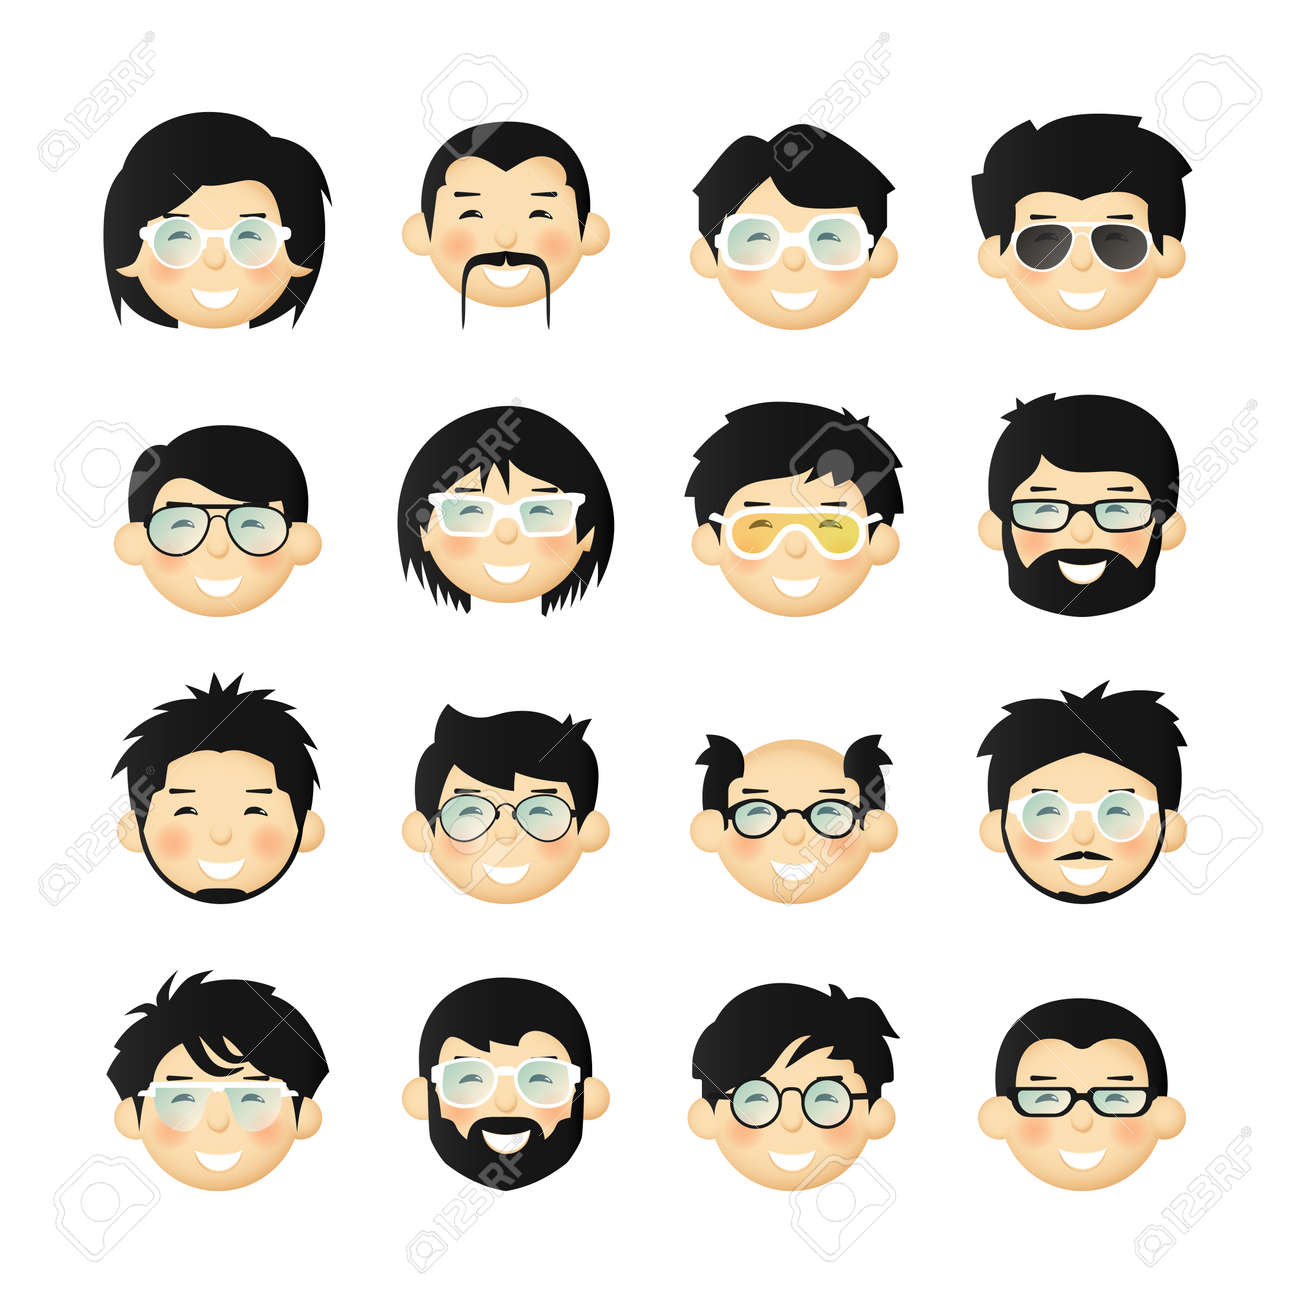 asian men head avatar iconset with beards mustaches glasses